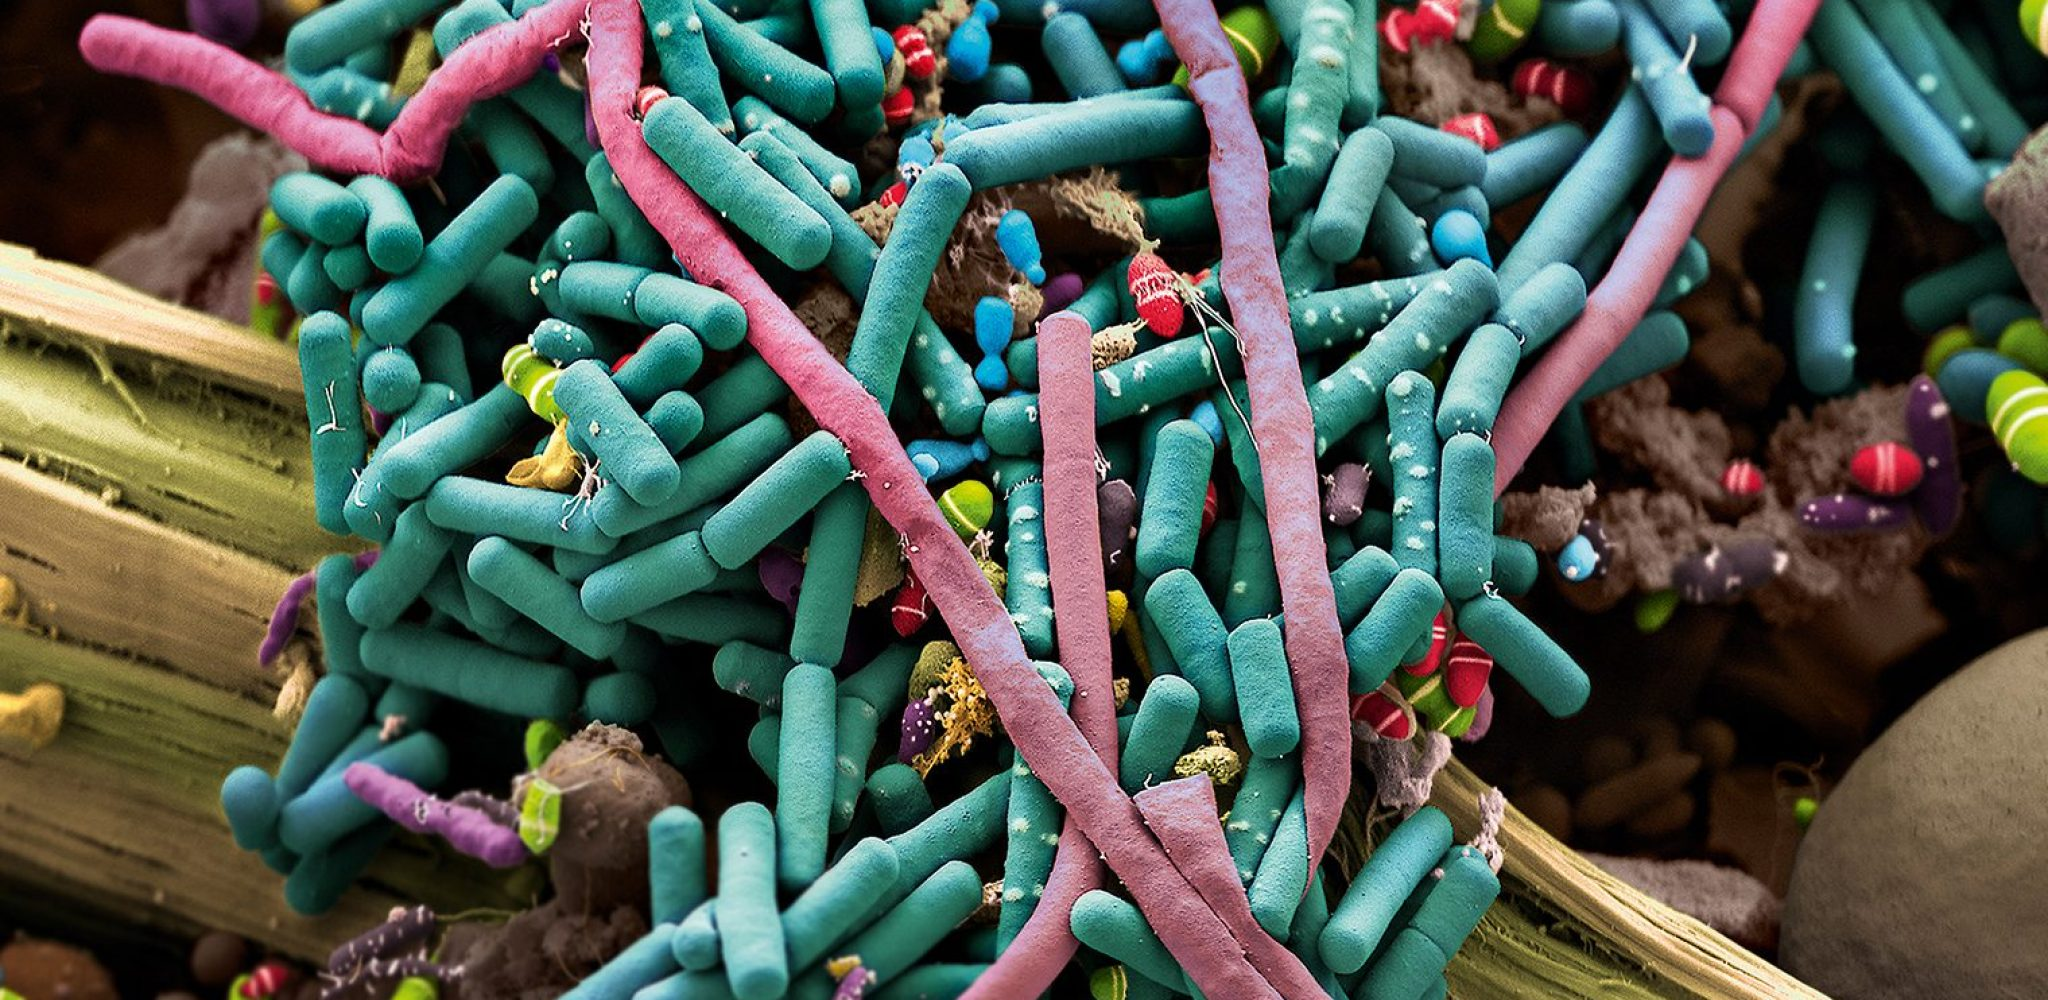 Das Titelbild «Intestinal Bacteria» (supported by HP Marti, Swiss TPH, Pathology, University Hospital Basel, and School of Life Sciences, FHNW, Muttenz) wurde uns freundlicherweise von Martin Oeggerli, zur Verfügung gestellt.